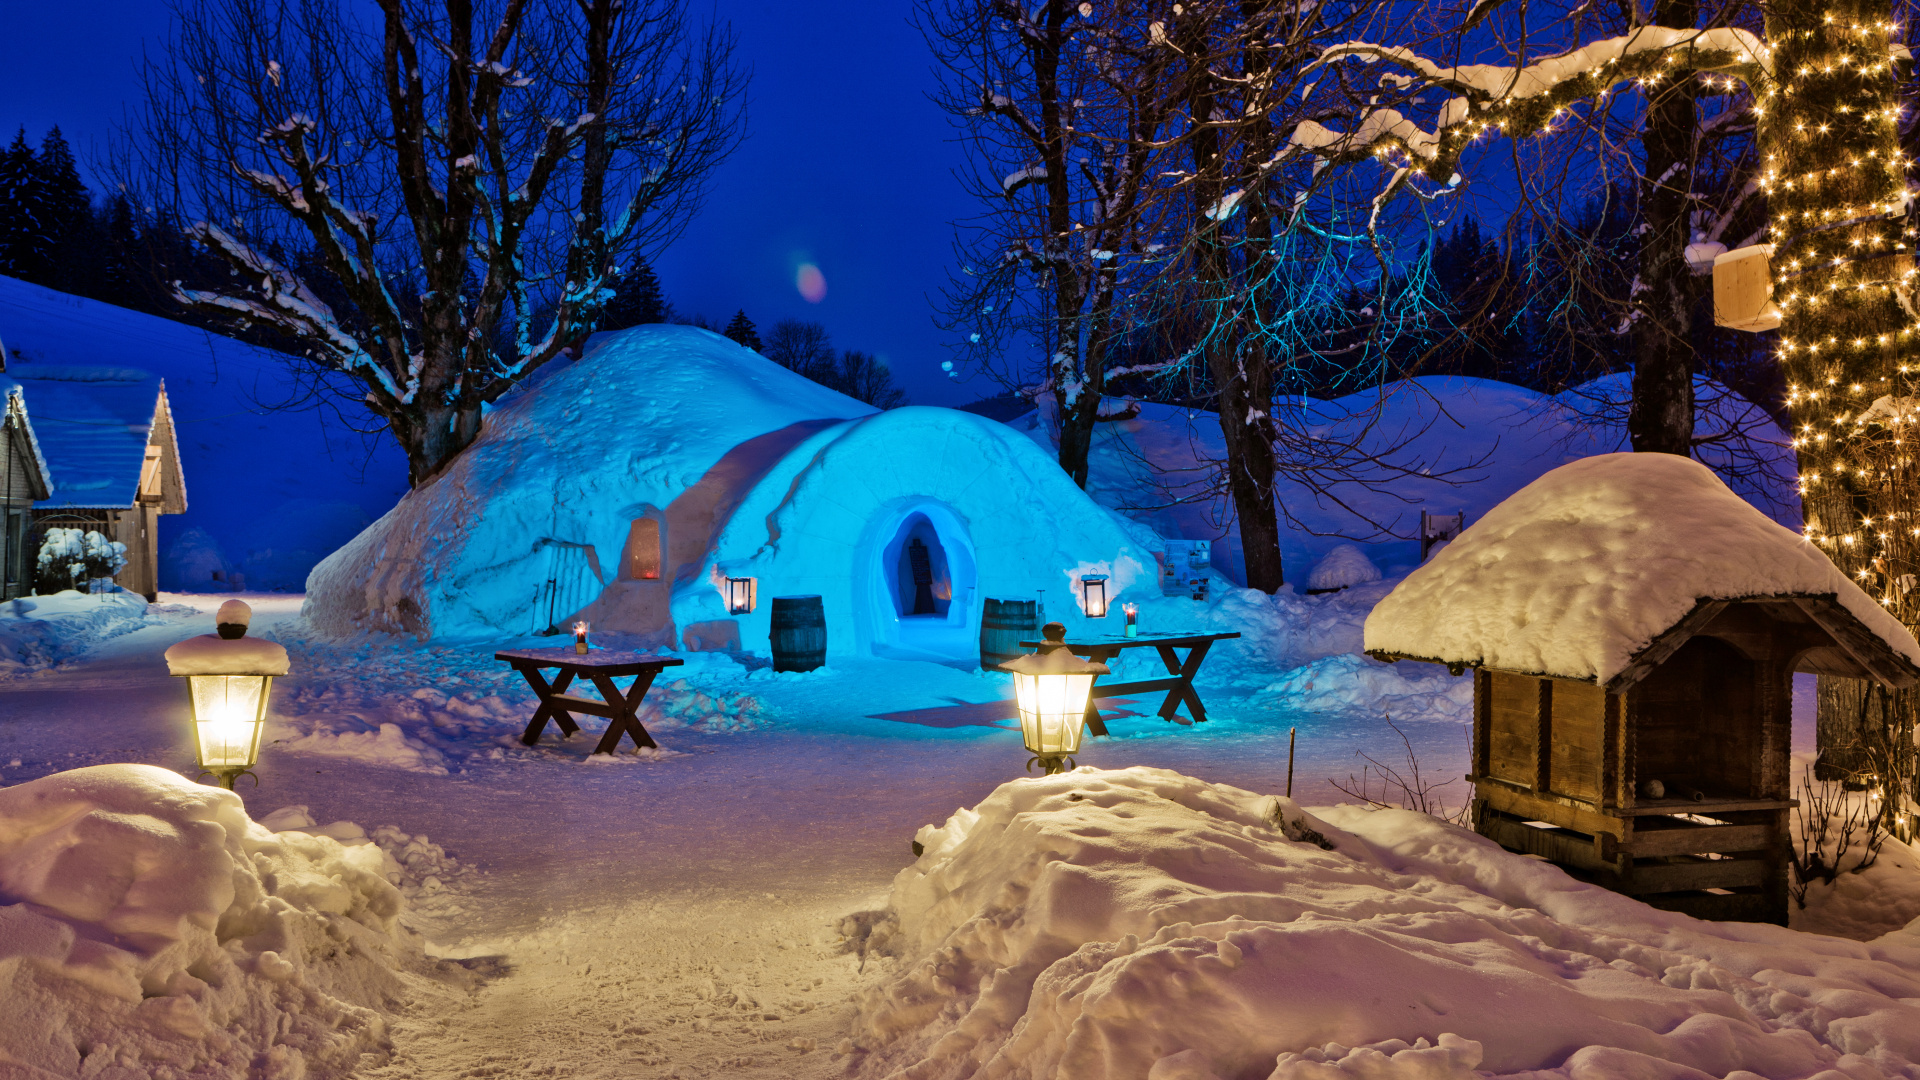 overnight at the igloo hotel bern tourism. Black Bedroom Furniture Sets. Home Design Ideas